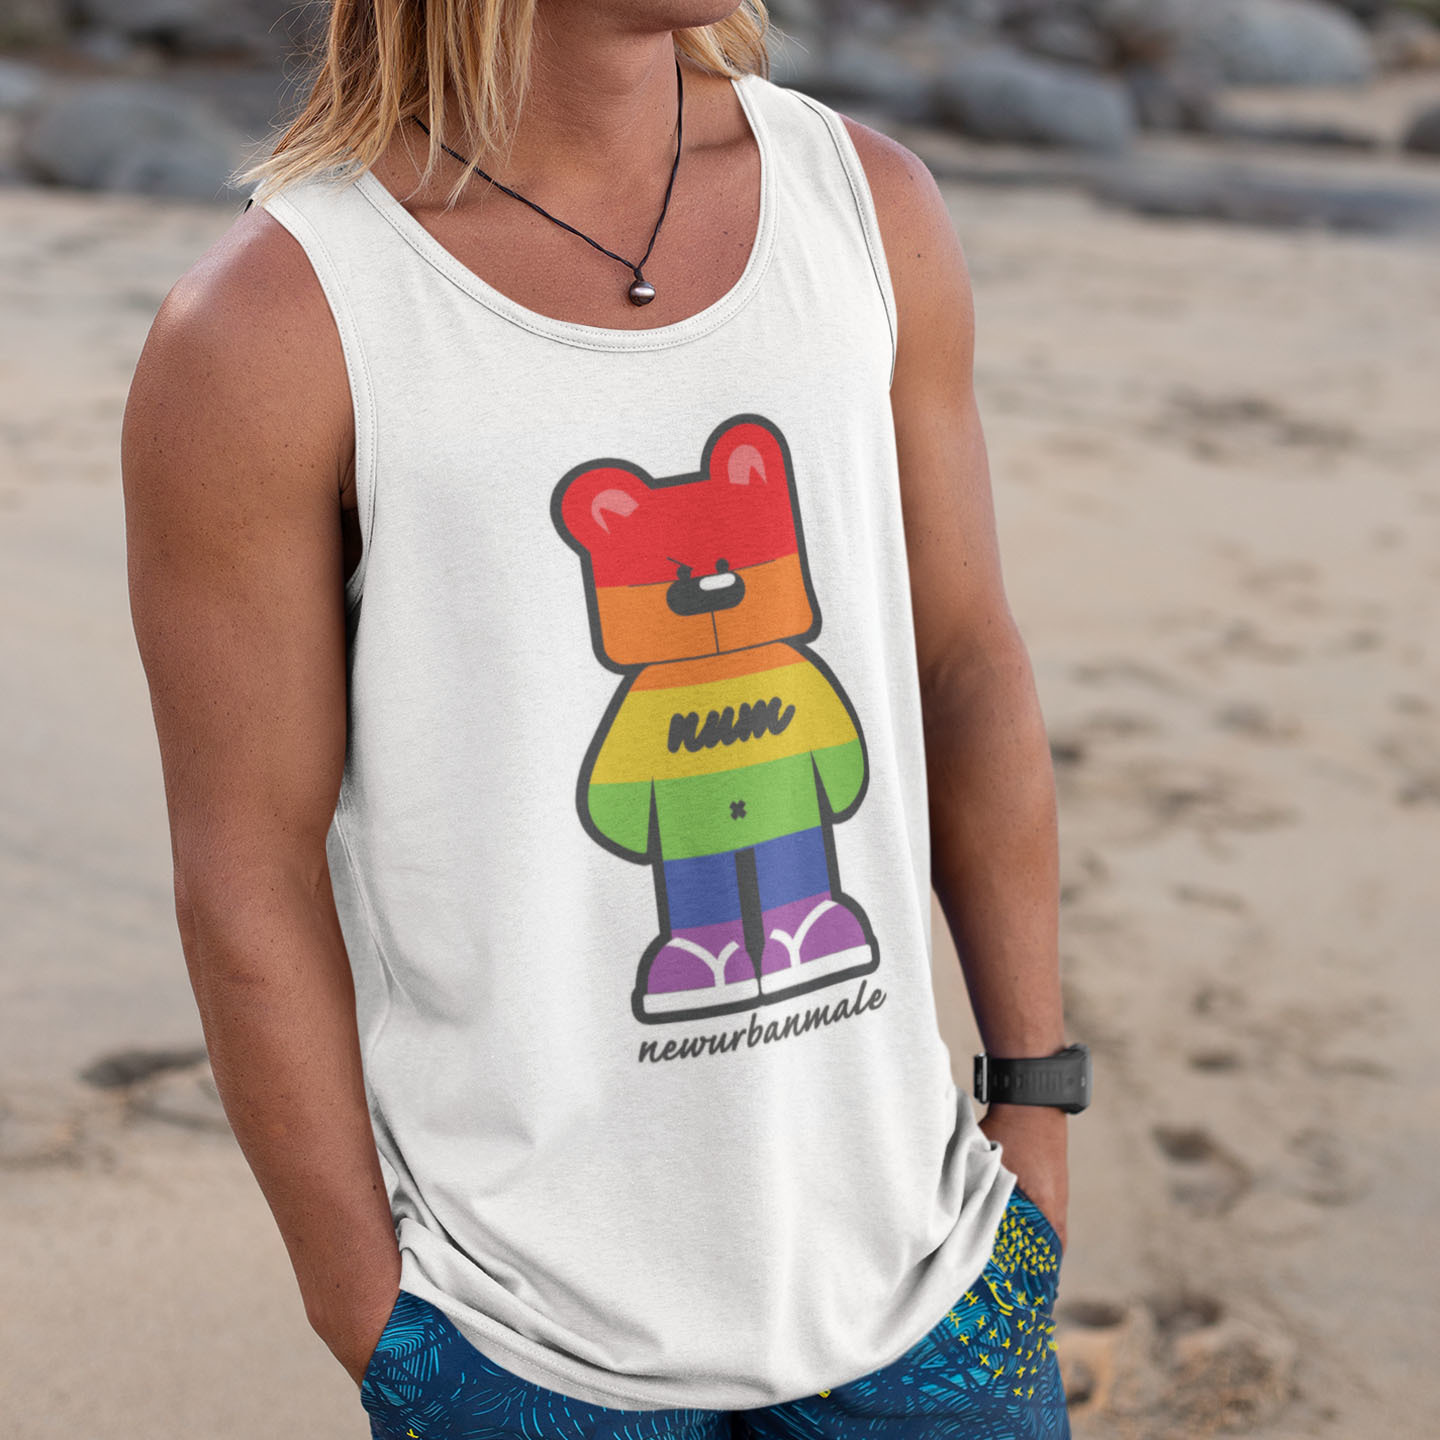 tank-top-mockup-of-a-cool-surfer-man-at-the-beach-26837 (1).jpg